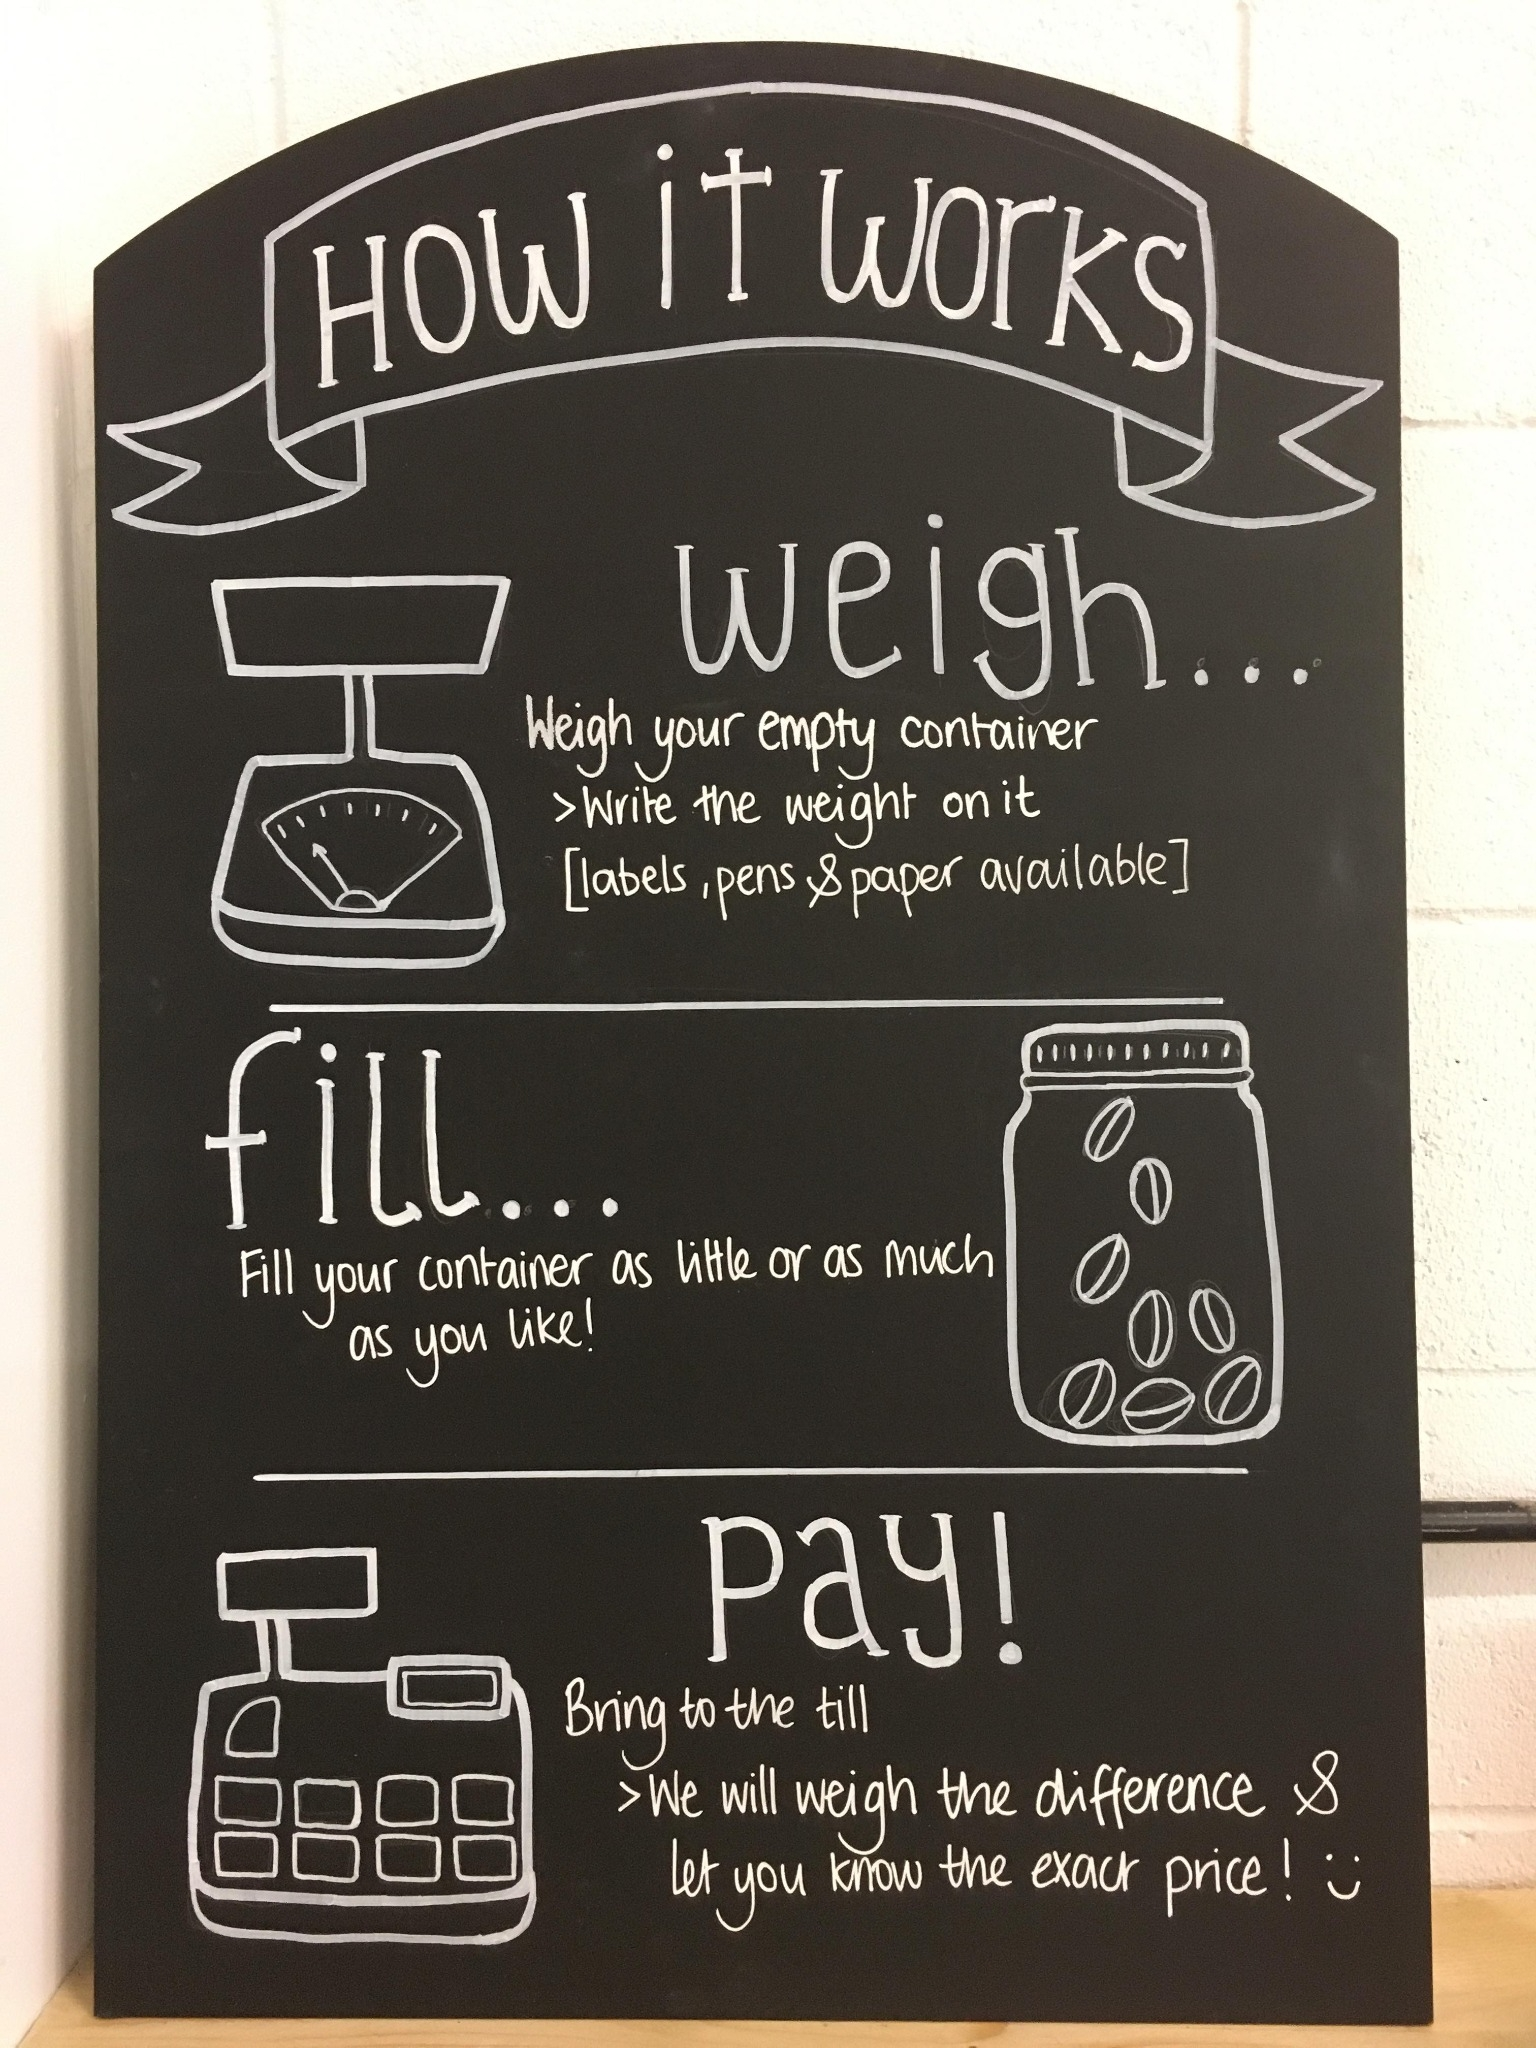 We like to keep it simple: Weigh, Fill & Pay